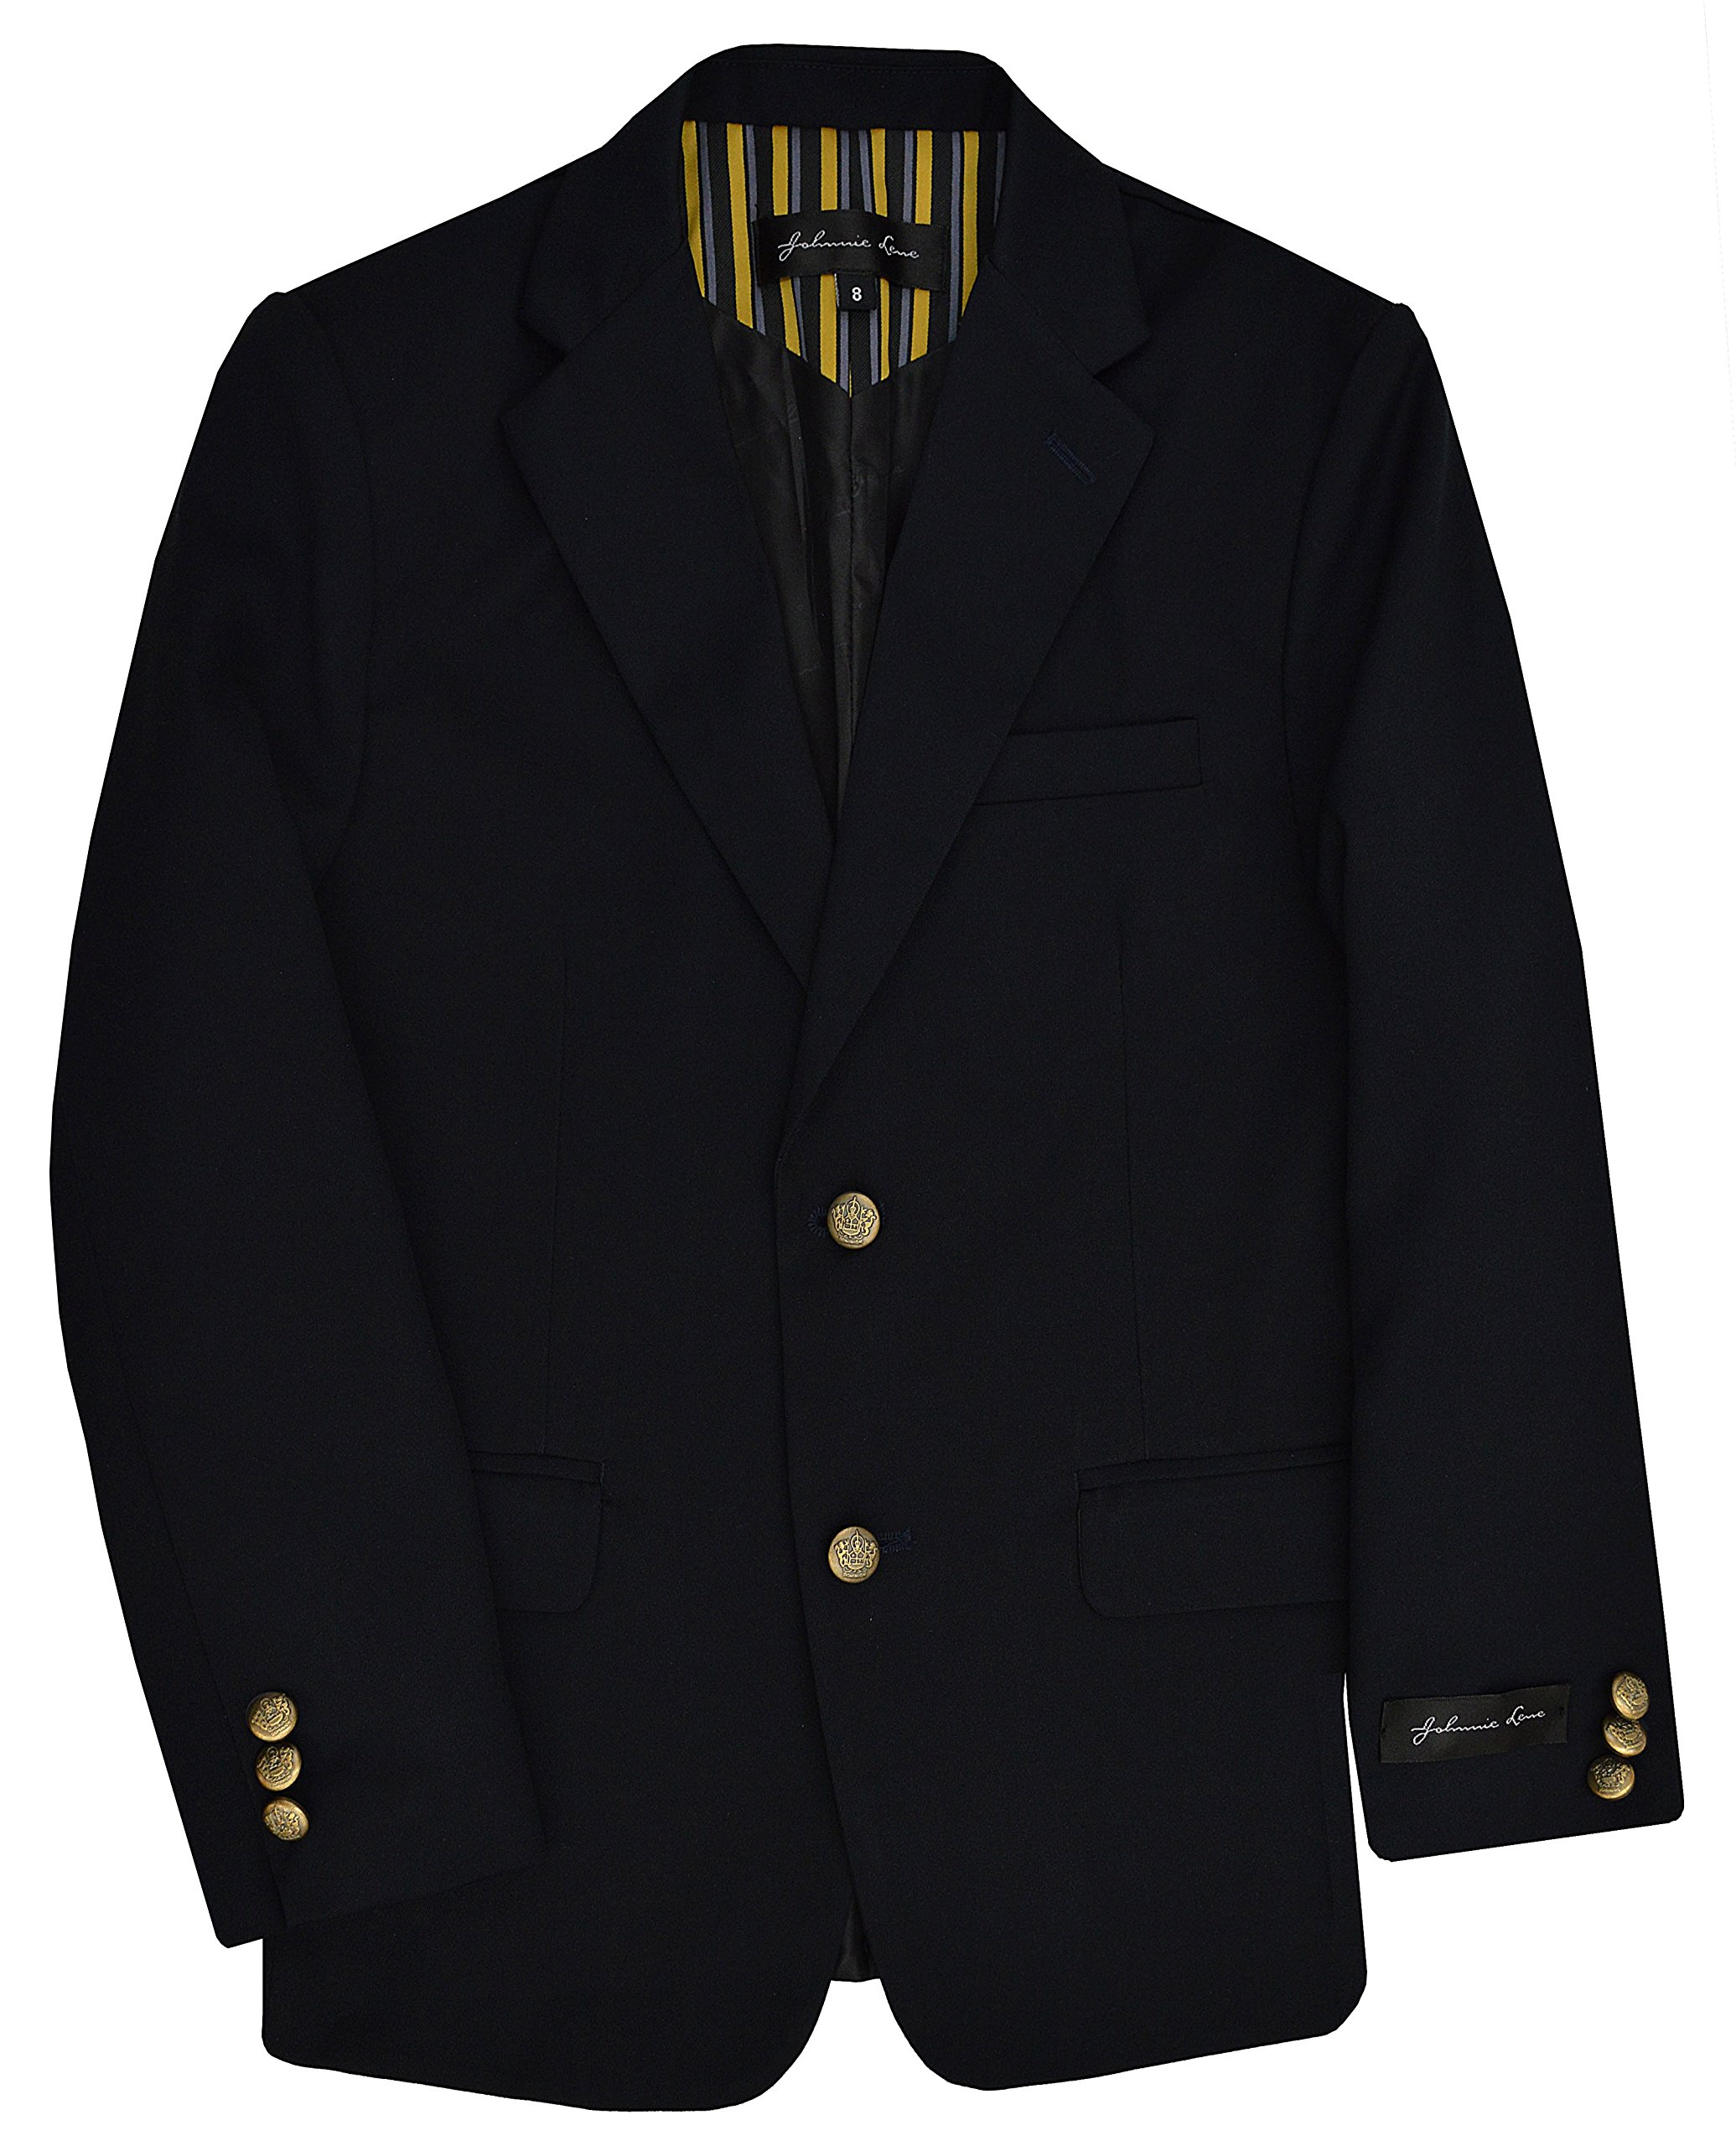 Dress Up Boys' Navy Blazer Jacket #JL30 (18, Navy Blue)